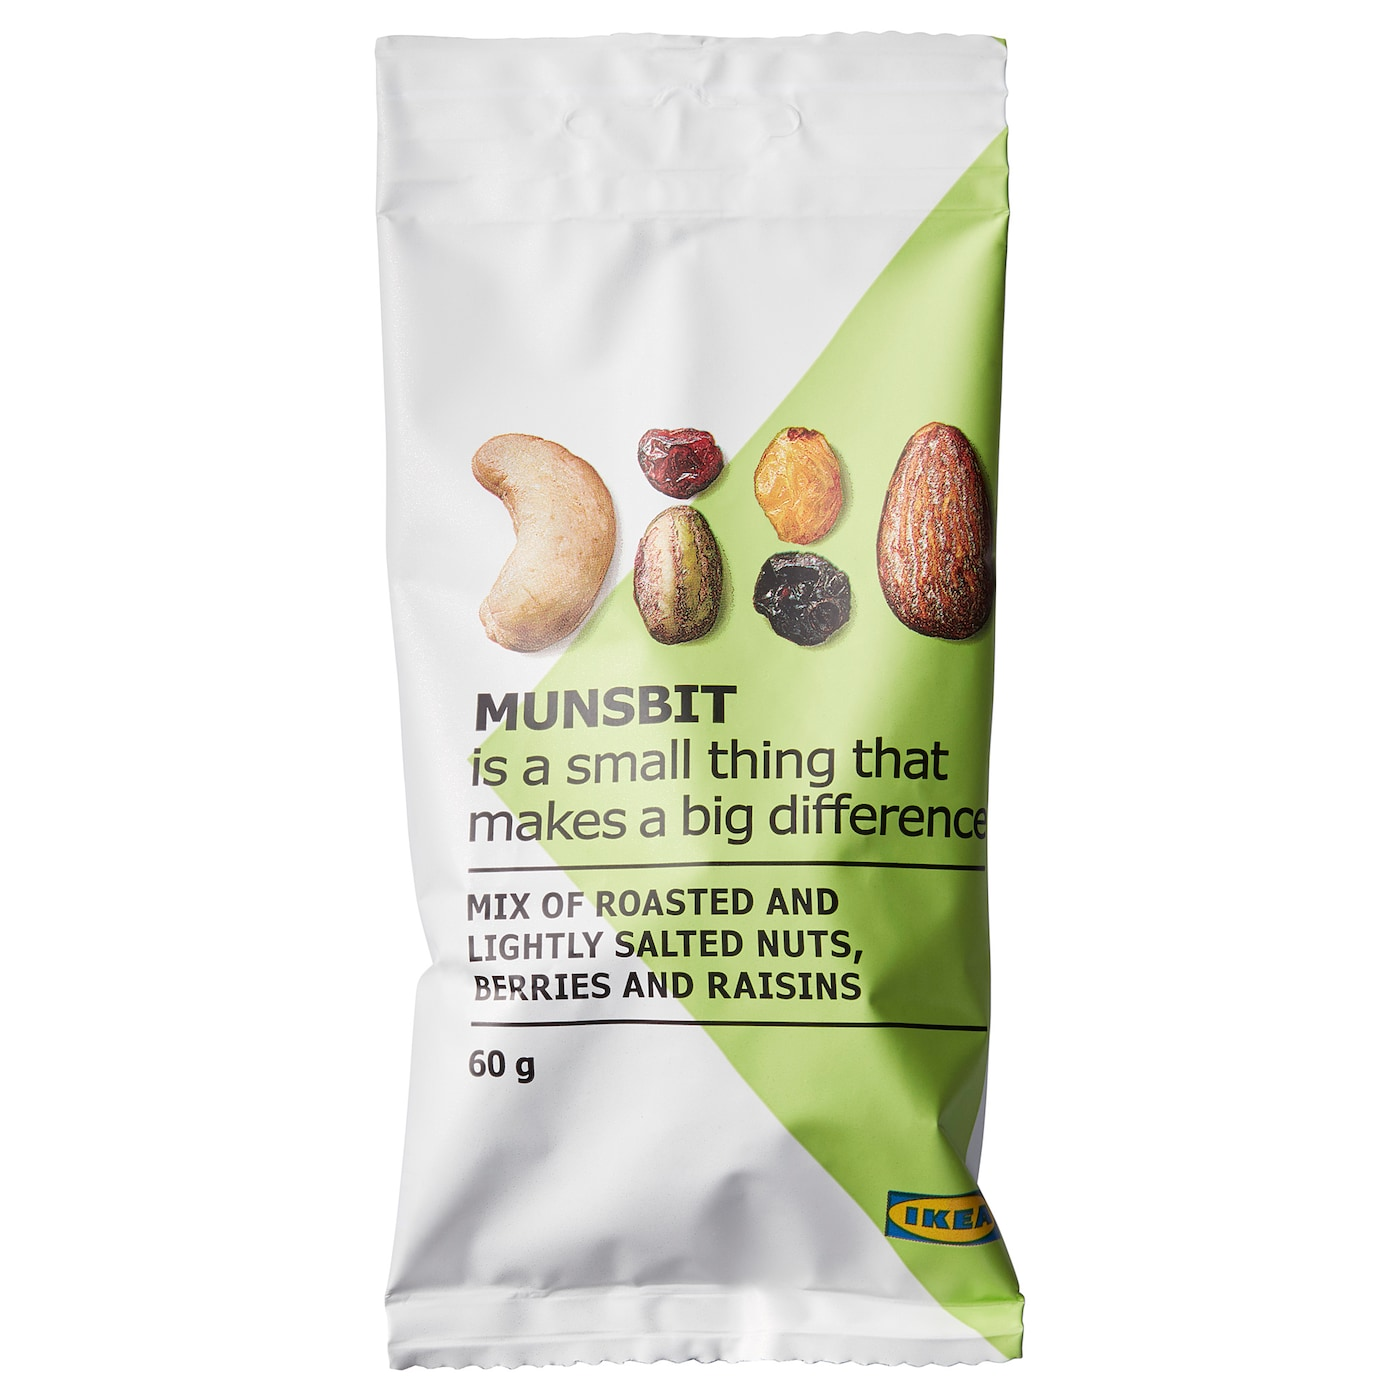 IKEA MUNSBIT dry-roasted nuts/berries/raisins A timesaver. Fuel up in a flash and keep going.